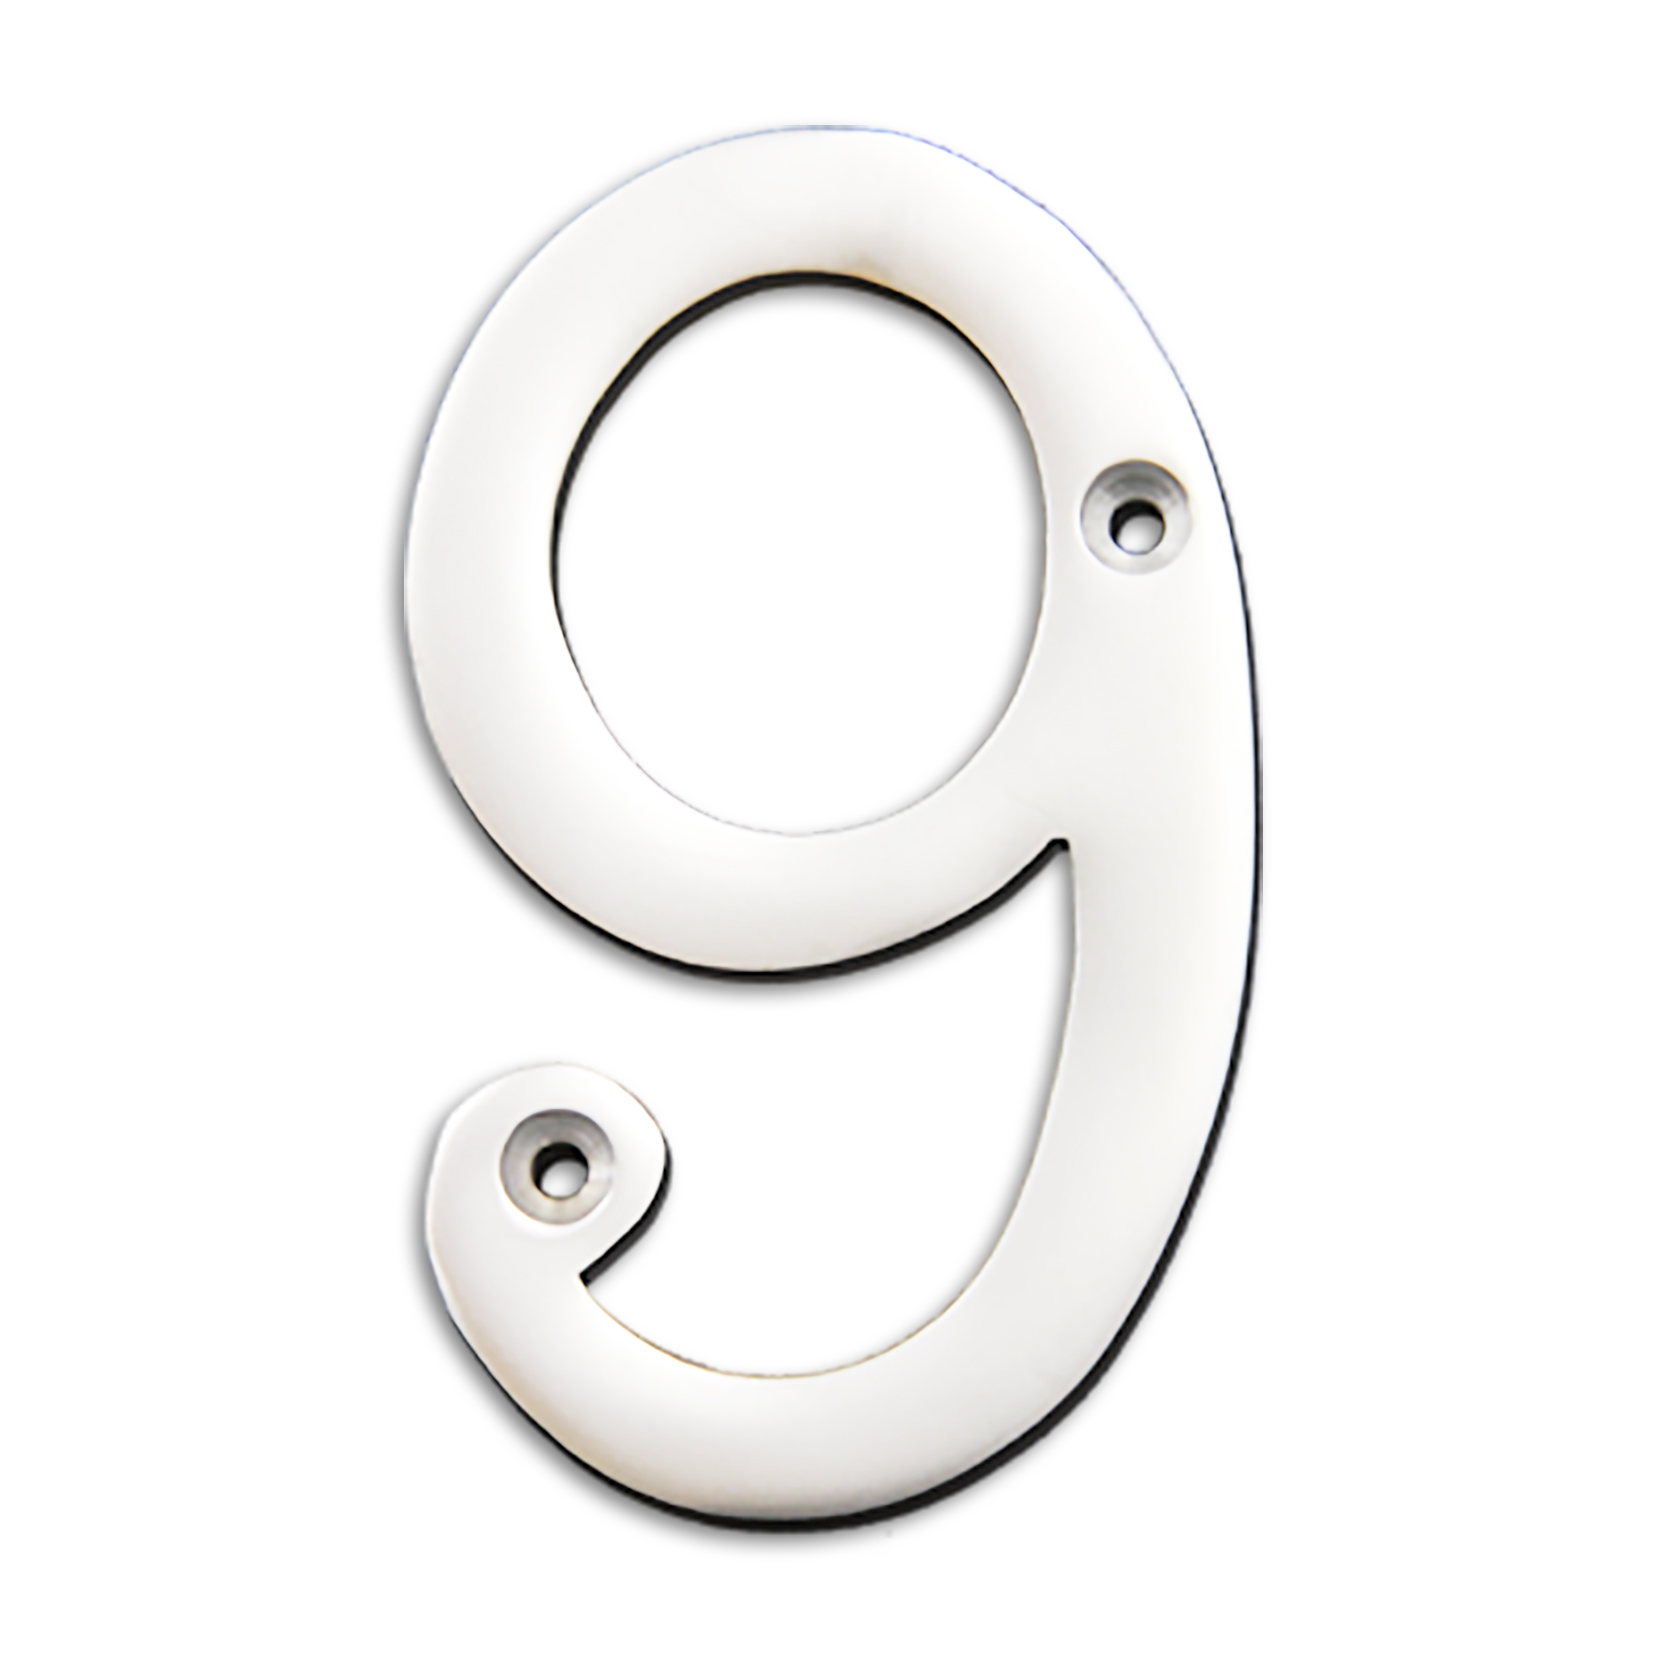 4-inch brass metal house number in polished chrome finish - metal number 9